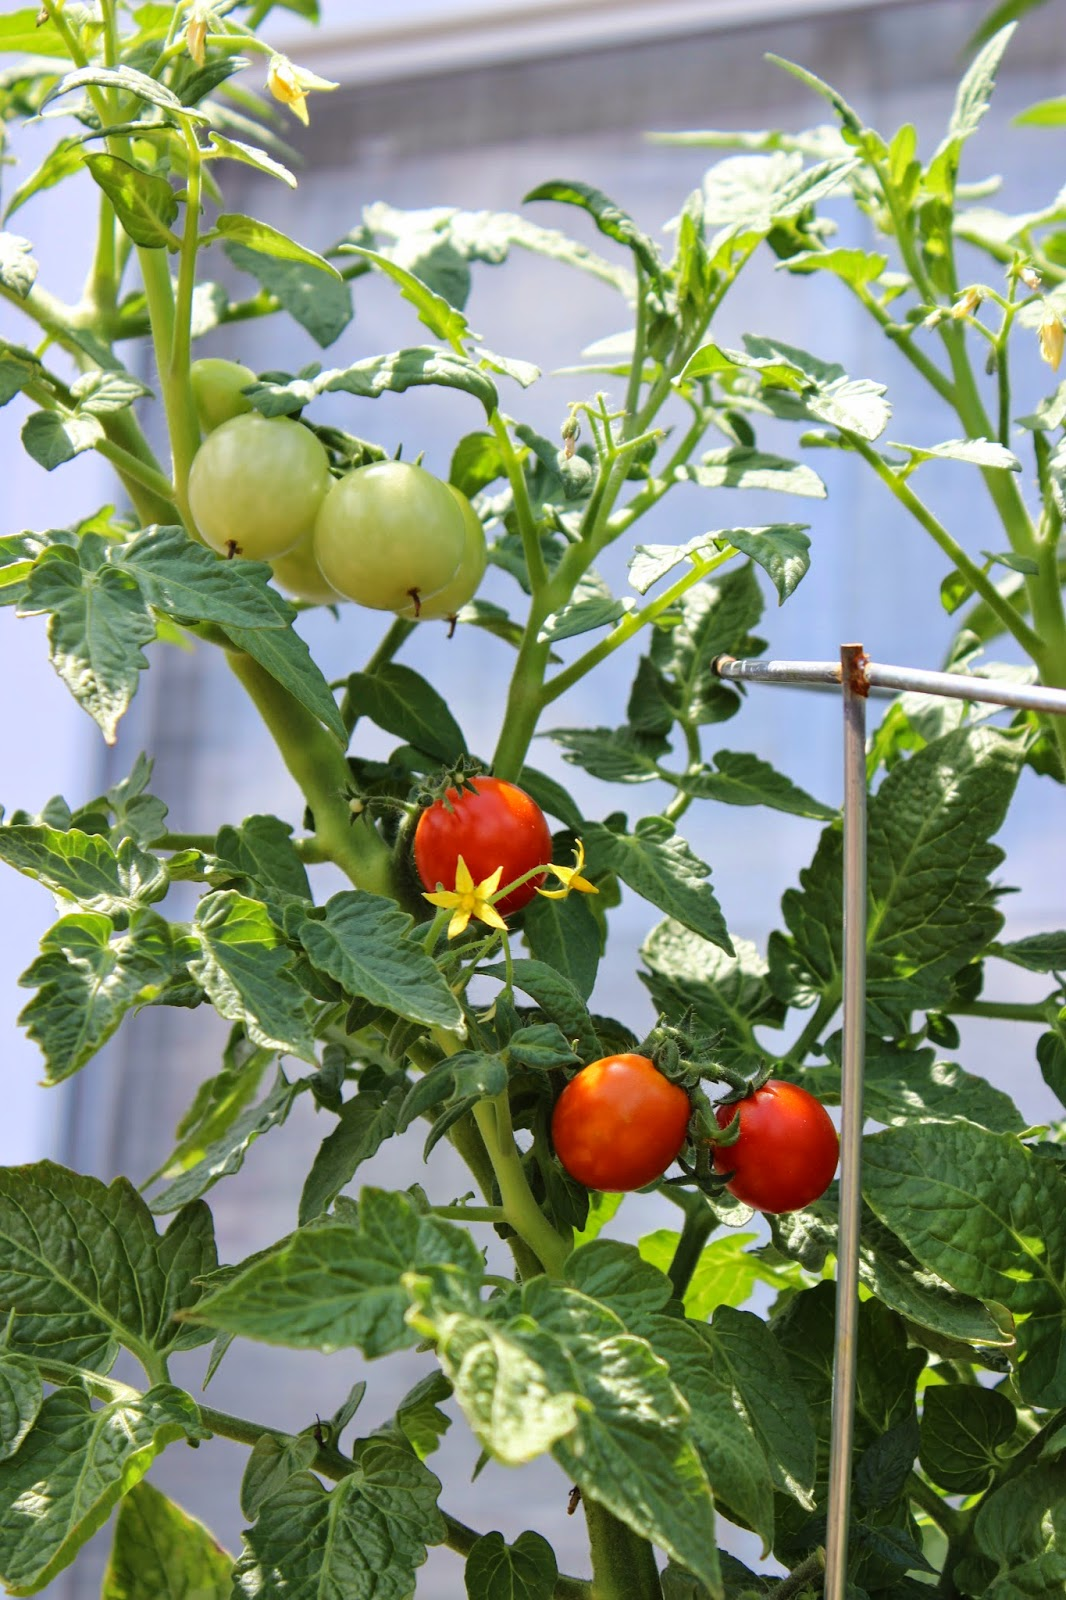 Picture of two green cherry tomatoes and three red cherry tomatoes on a tomato plant